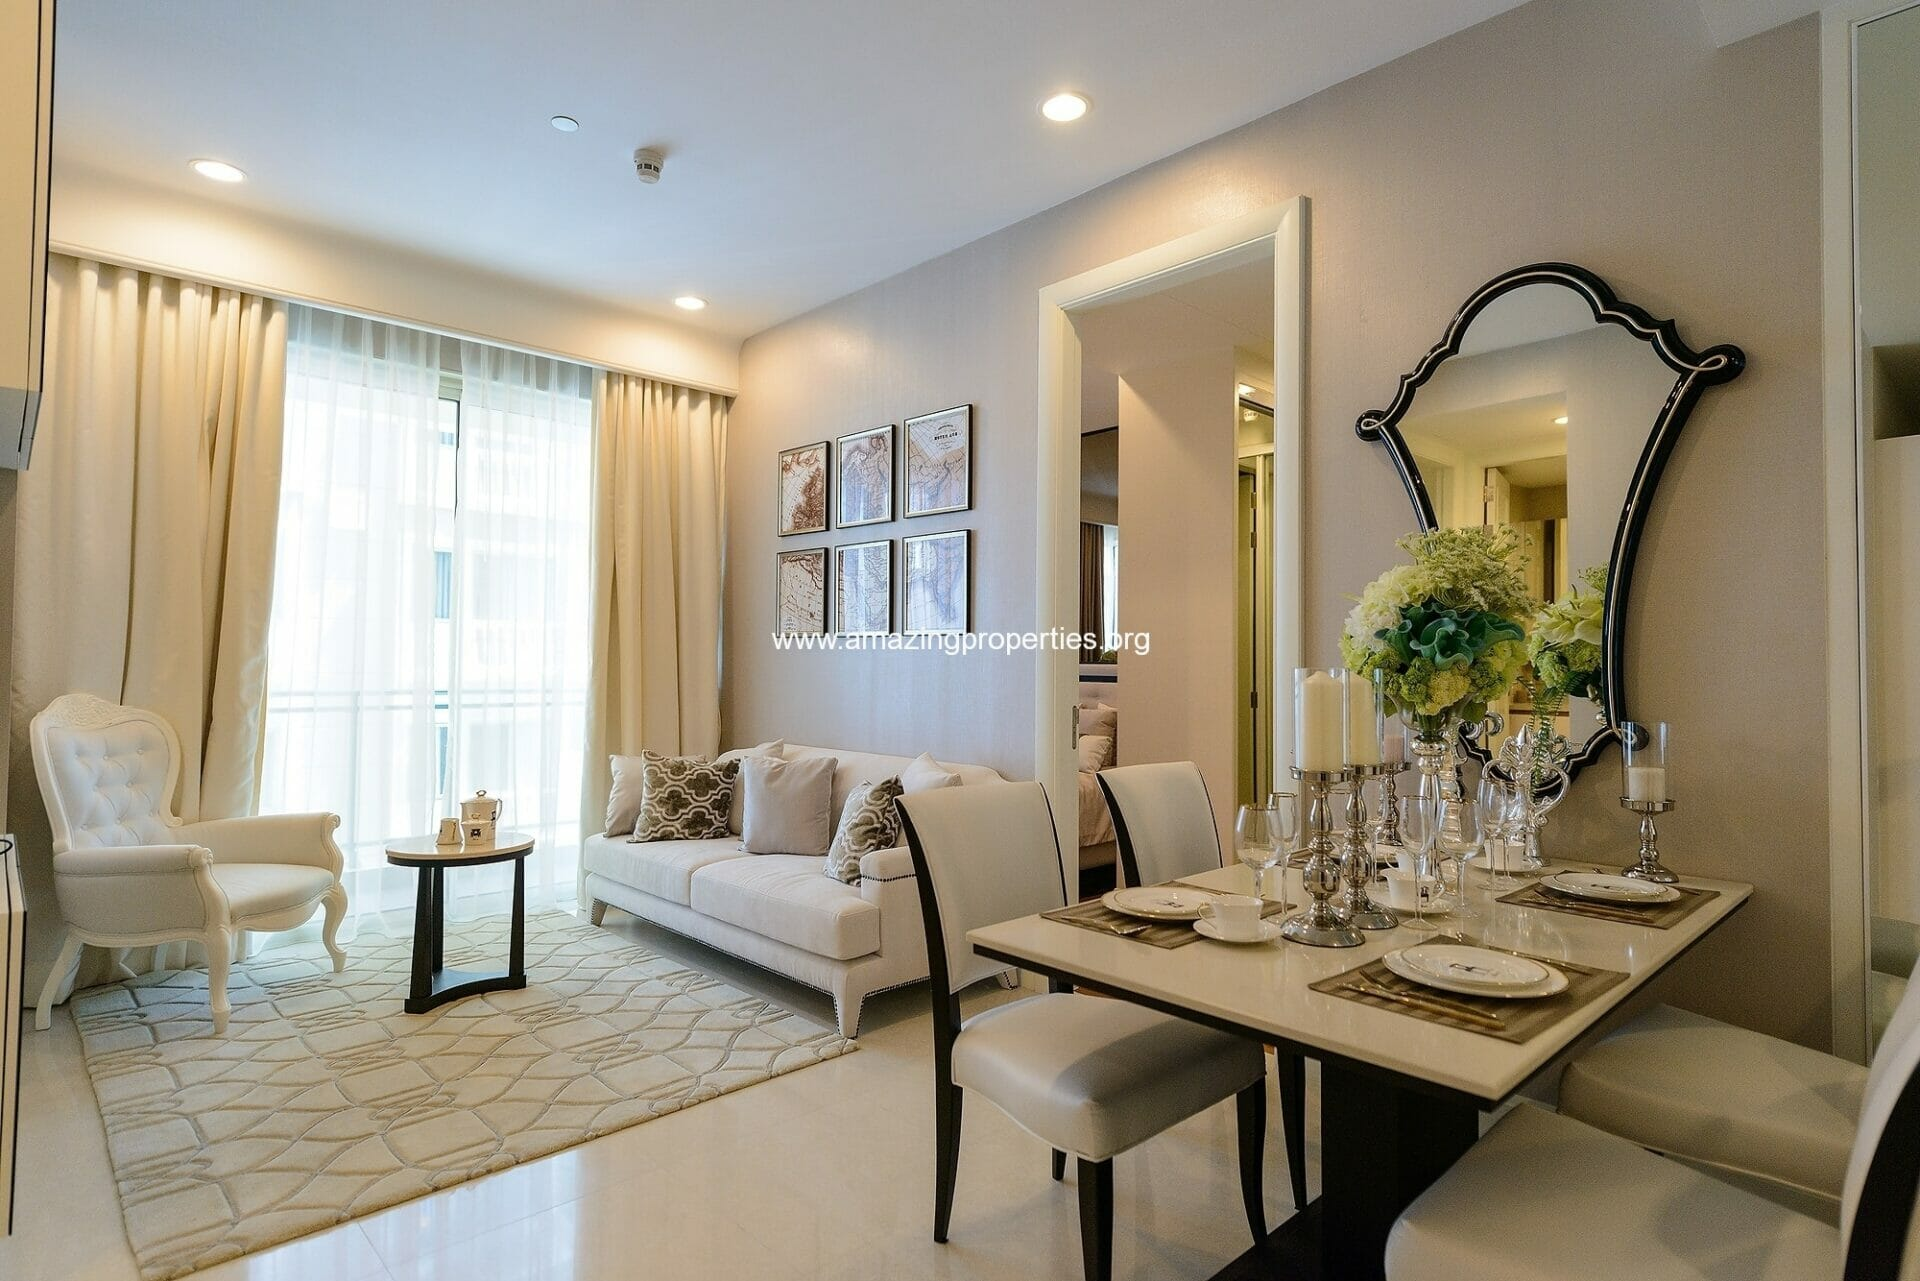 Q Langsuan Chidlom 2 Bedroom Condo for rent